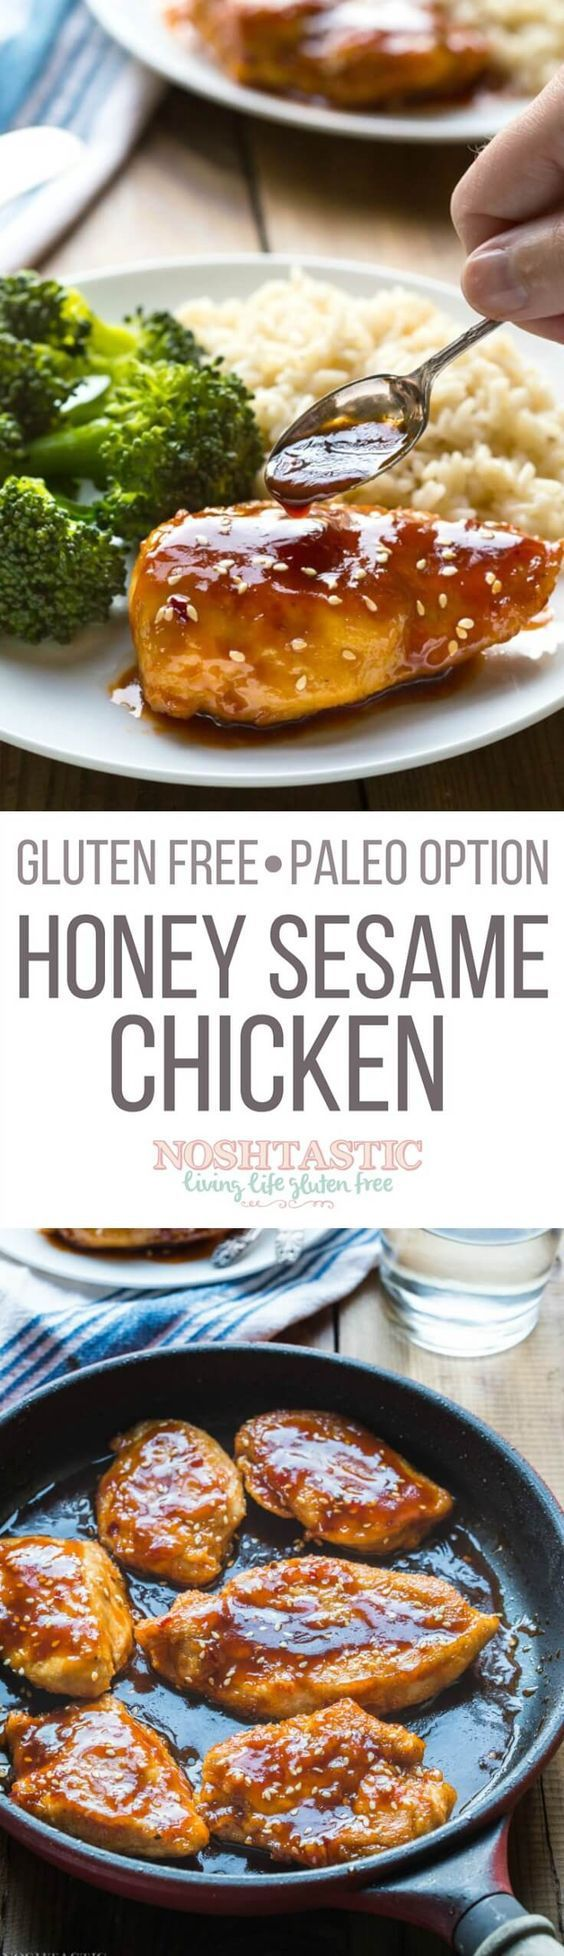 Quick easy and healthy too! this Gluten Free Sesame Chicken with Honey recipe is a winner and it cooks in only 10 minutes you'll love it and probably have all the ingredients already! With Paleo option   475 Calories Per Serving  